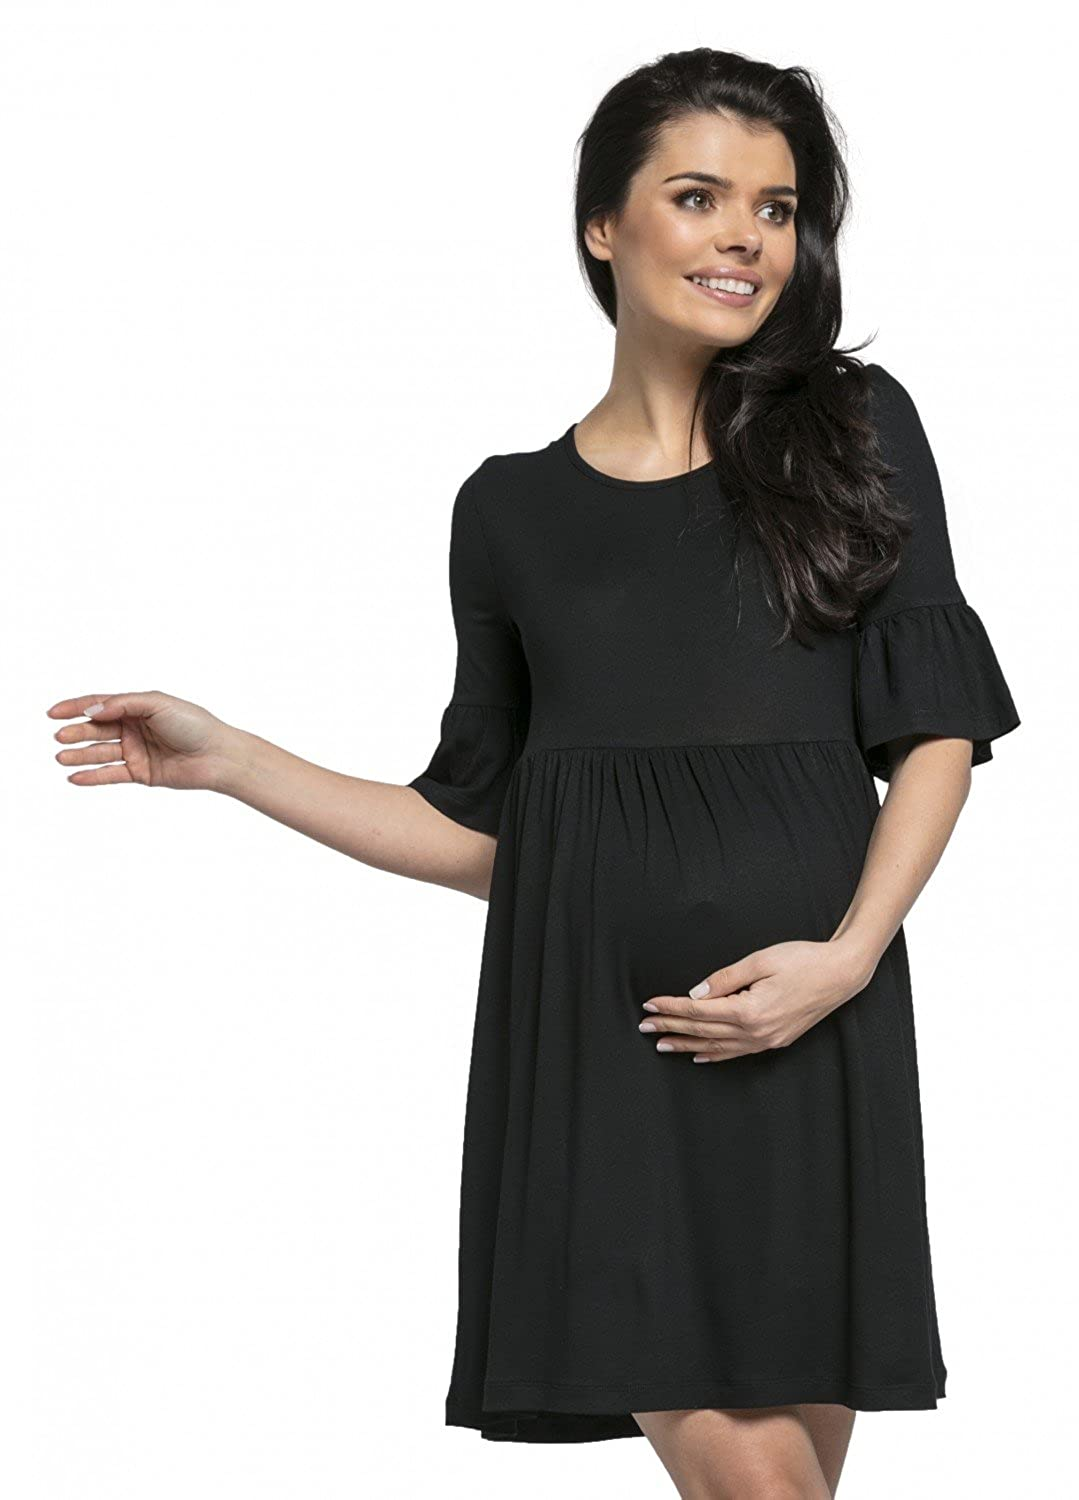 Happy Mama. Donna Vestito Prémaman Abito Girocollo Mezza Manica. 611 611_maternitydress